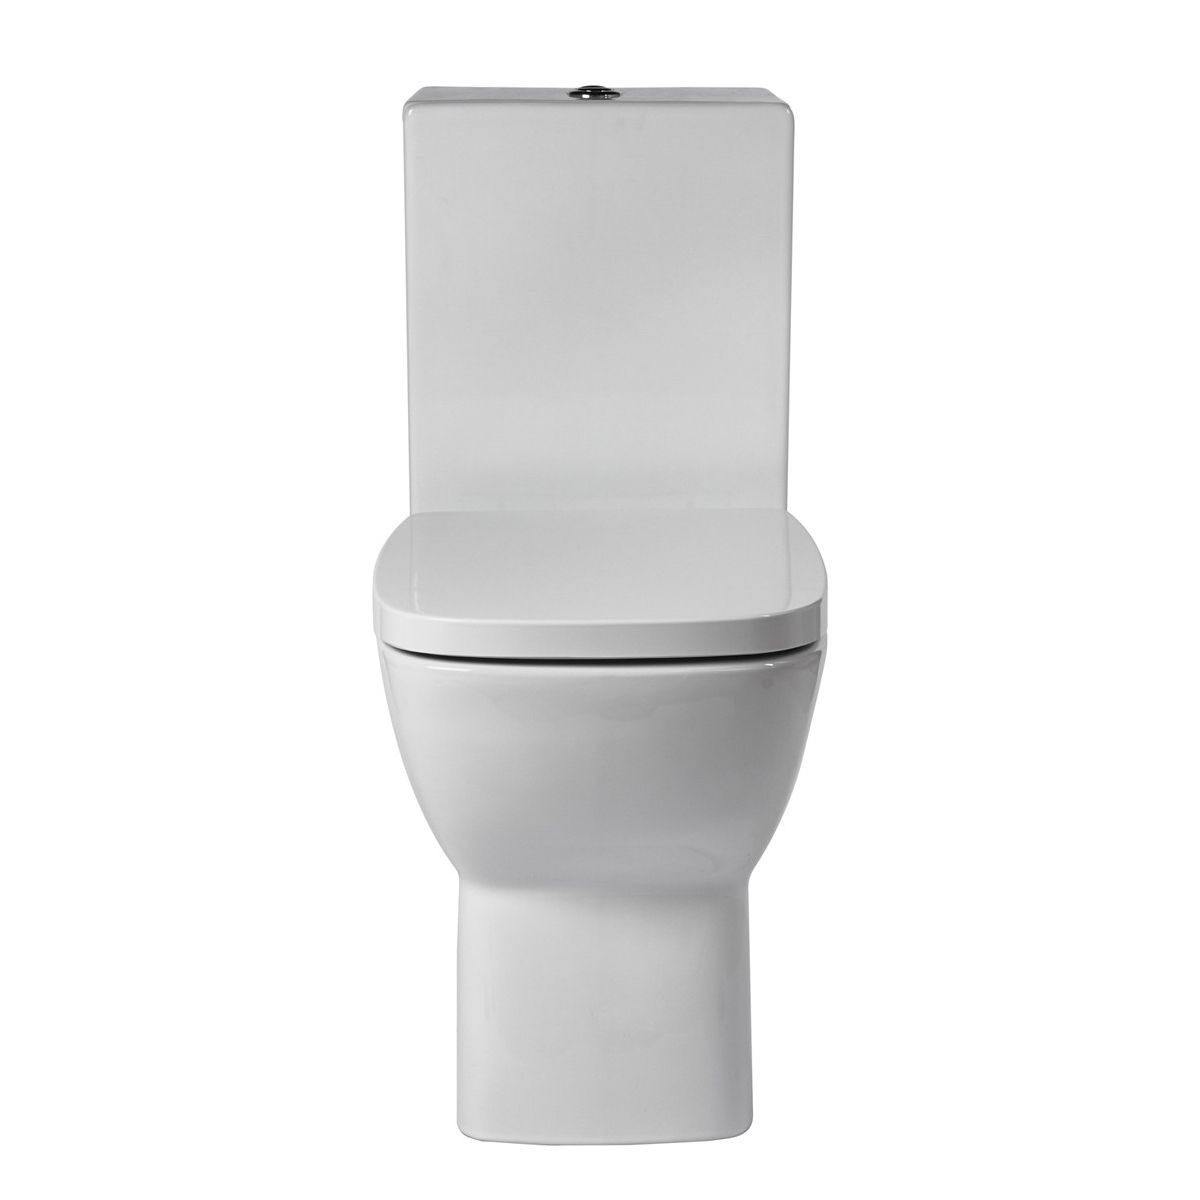 Frontline Piccolo Close Coupled Toilet with Soft Close Seat